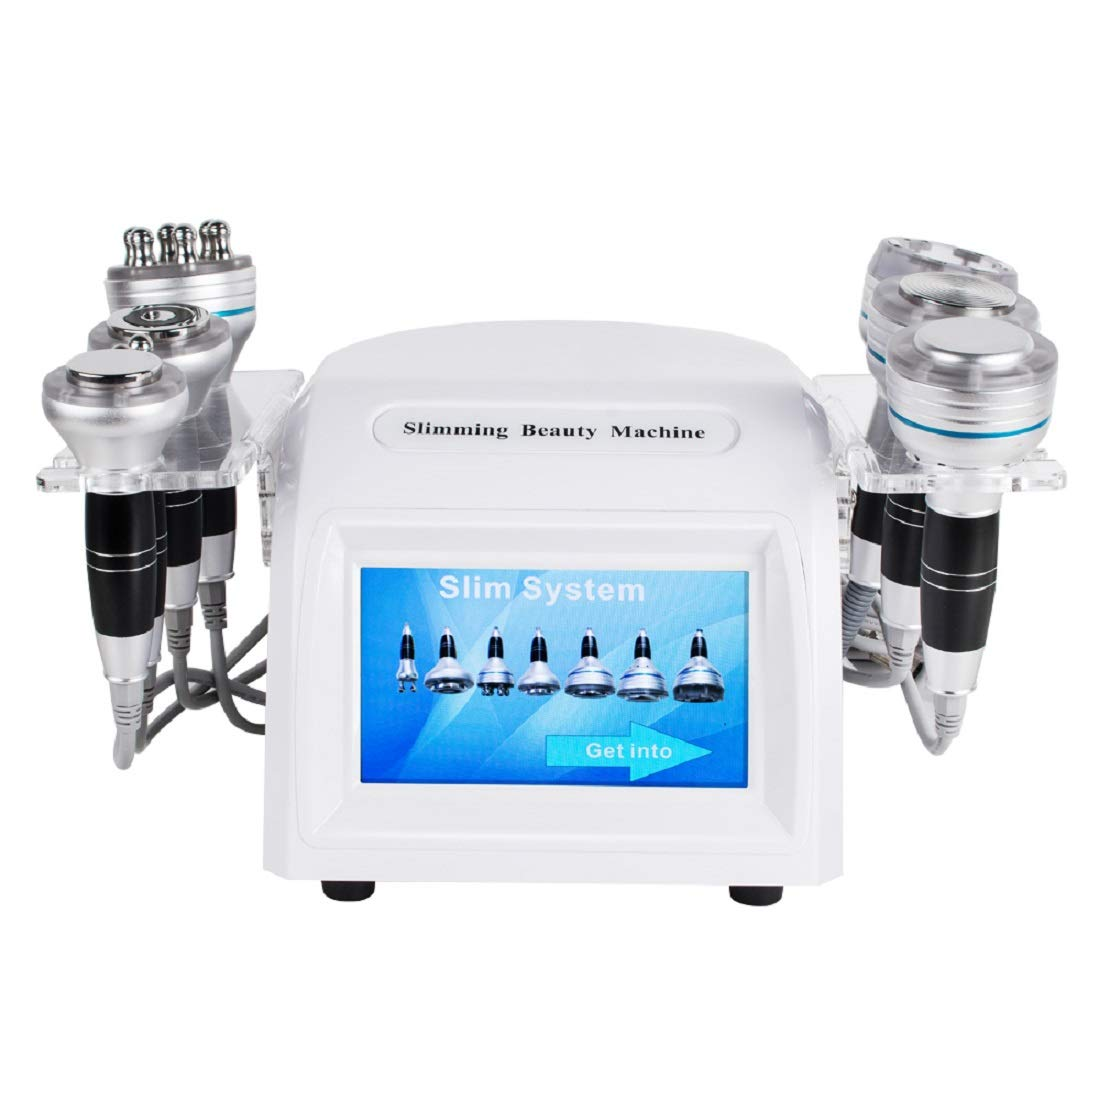 7 in 1 Body Slimming Vacuum Machine, Face Tighten Facial Lifting Skin Massager Anti-wrinkle Body Shaping Skin Rejuvenation Treatment for Home Salon Use 110V